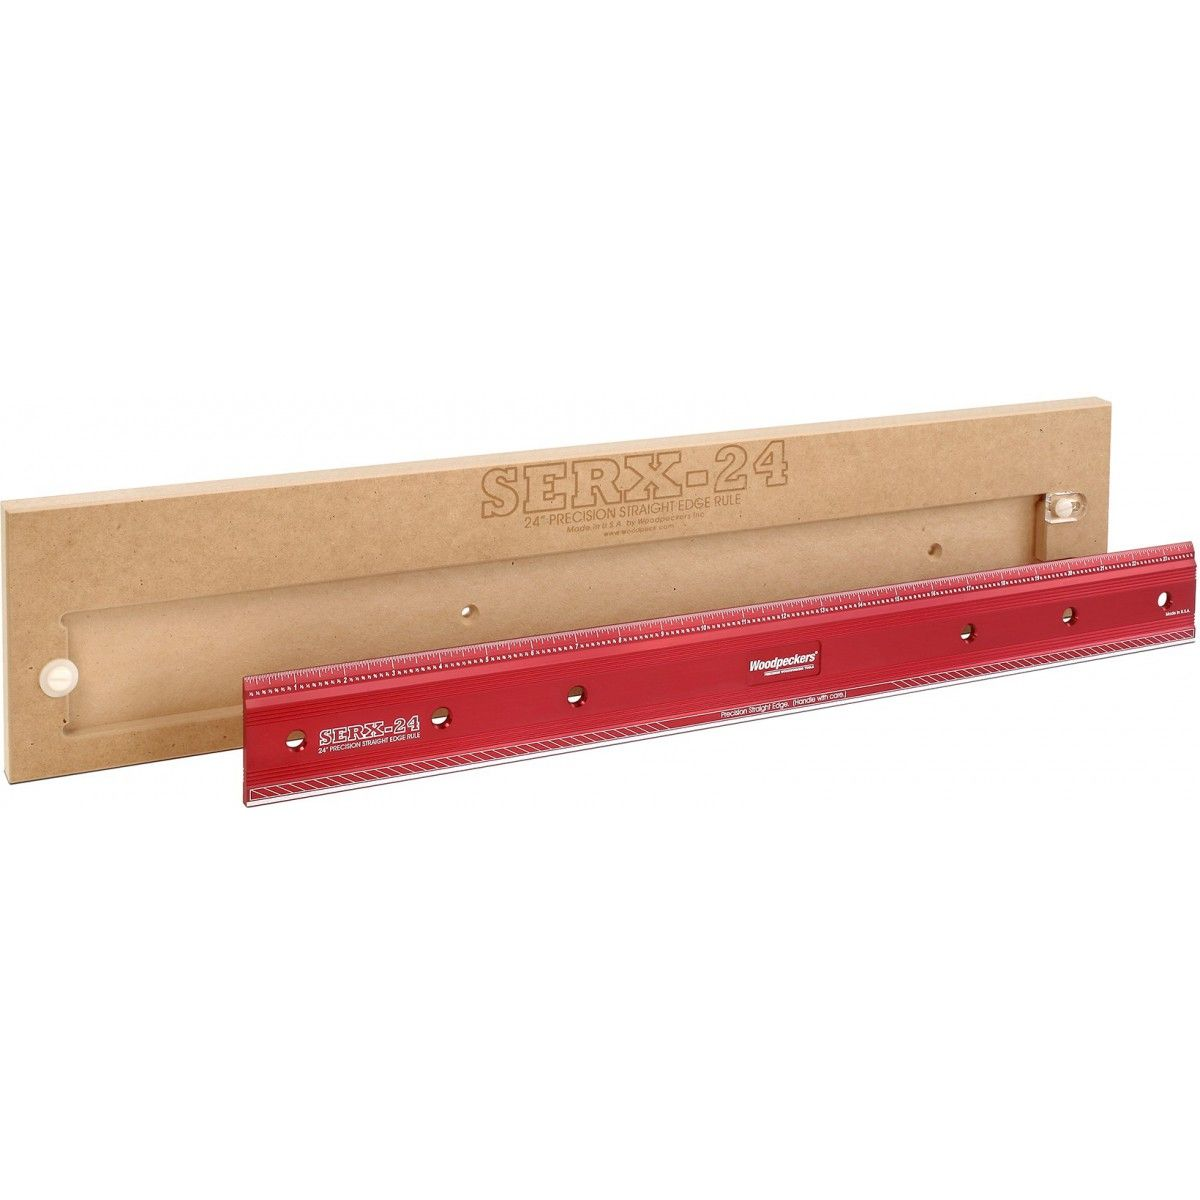 Woodpeckers Serxl 24 Straight Edge Rule Tool Box Challenges